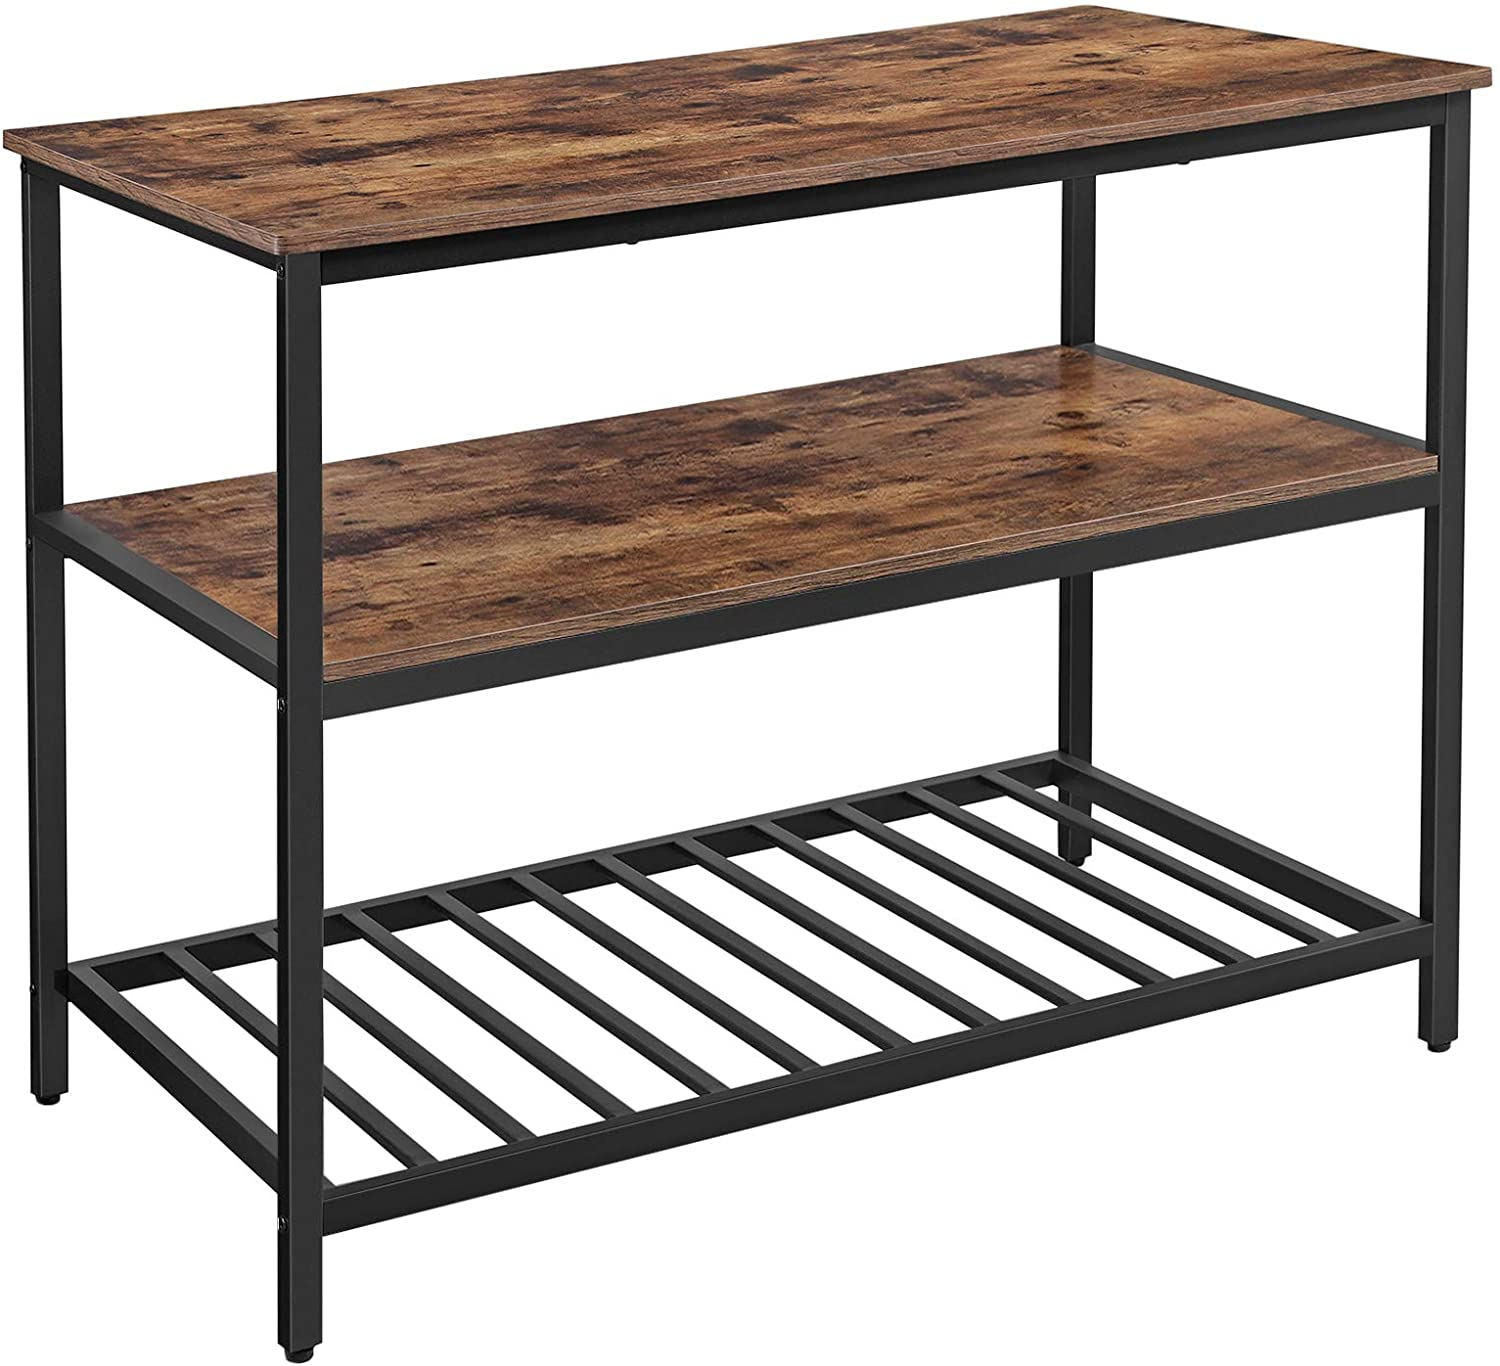 Enjoy fast, free nationwide shipping!  Family owned and operated, HawkinsWoodshop.com is your one stop shop for affordable furniture.  Shop HawkinsWoodshop.com for solid wood & metal modern, traditional, contemporary, industrial, custom, rustic, and farmhouse furniture including our Ryan 3 Shelves Kitchen Island.